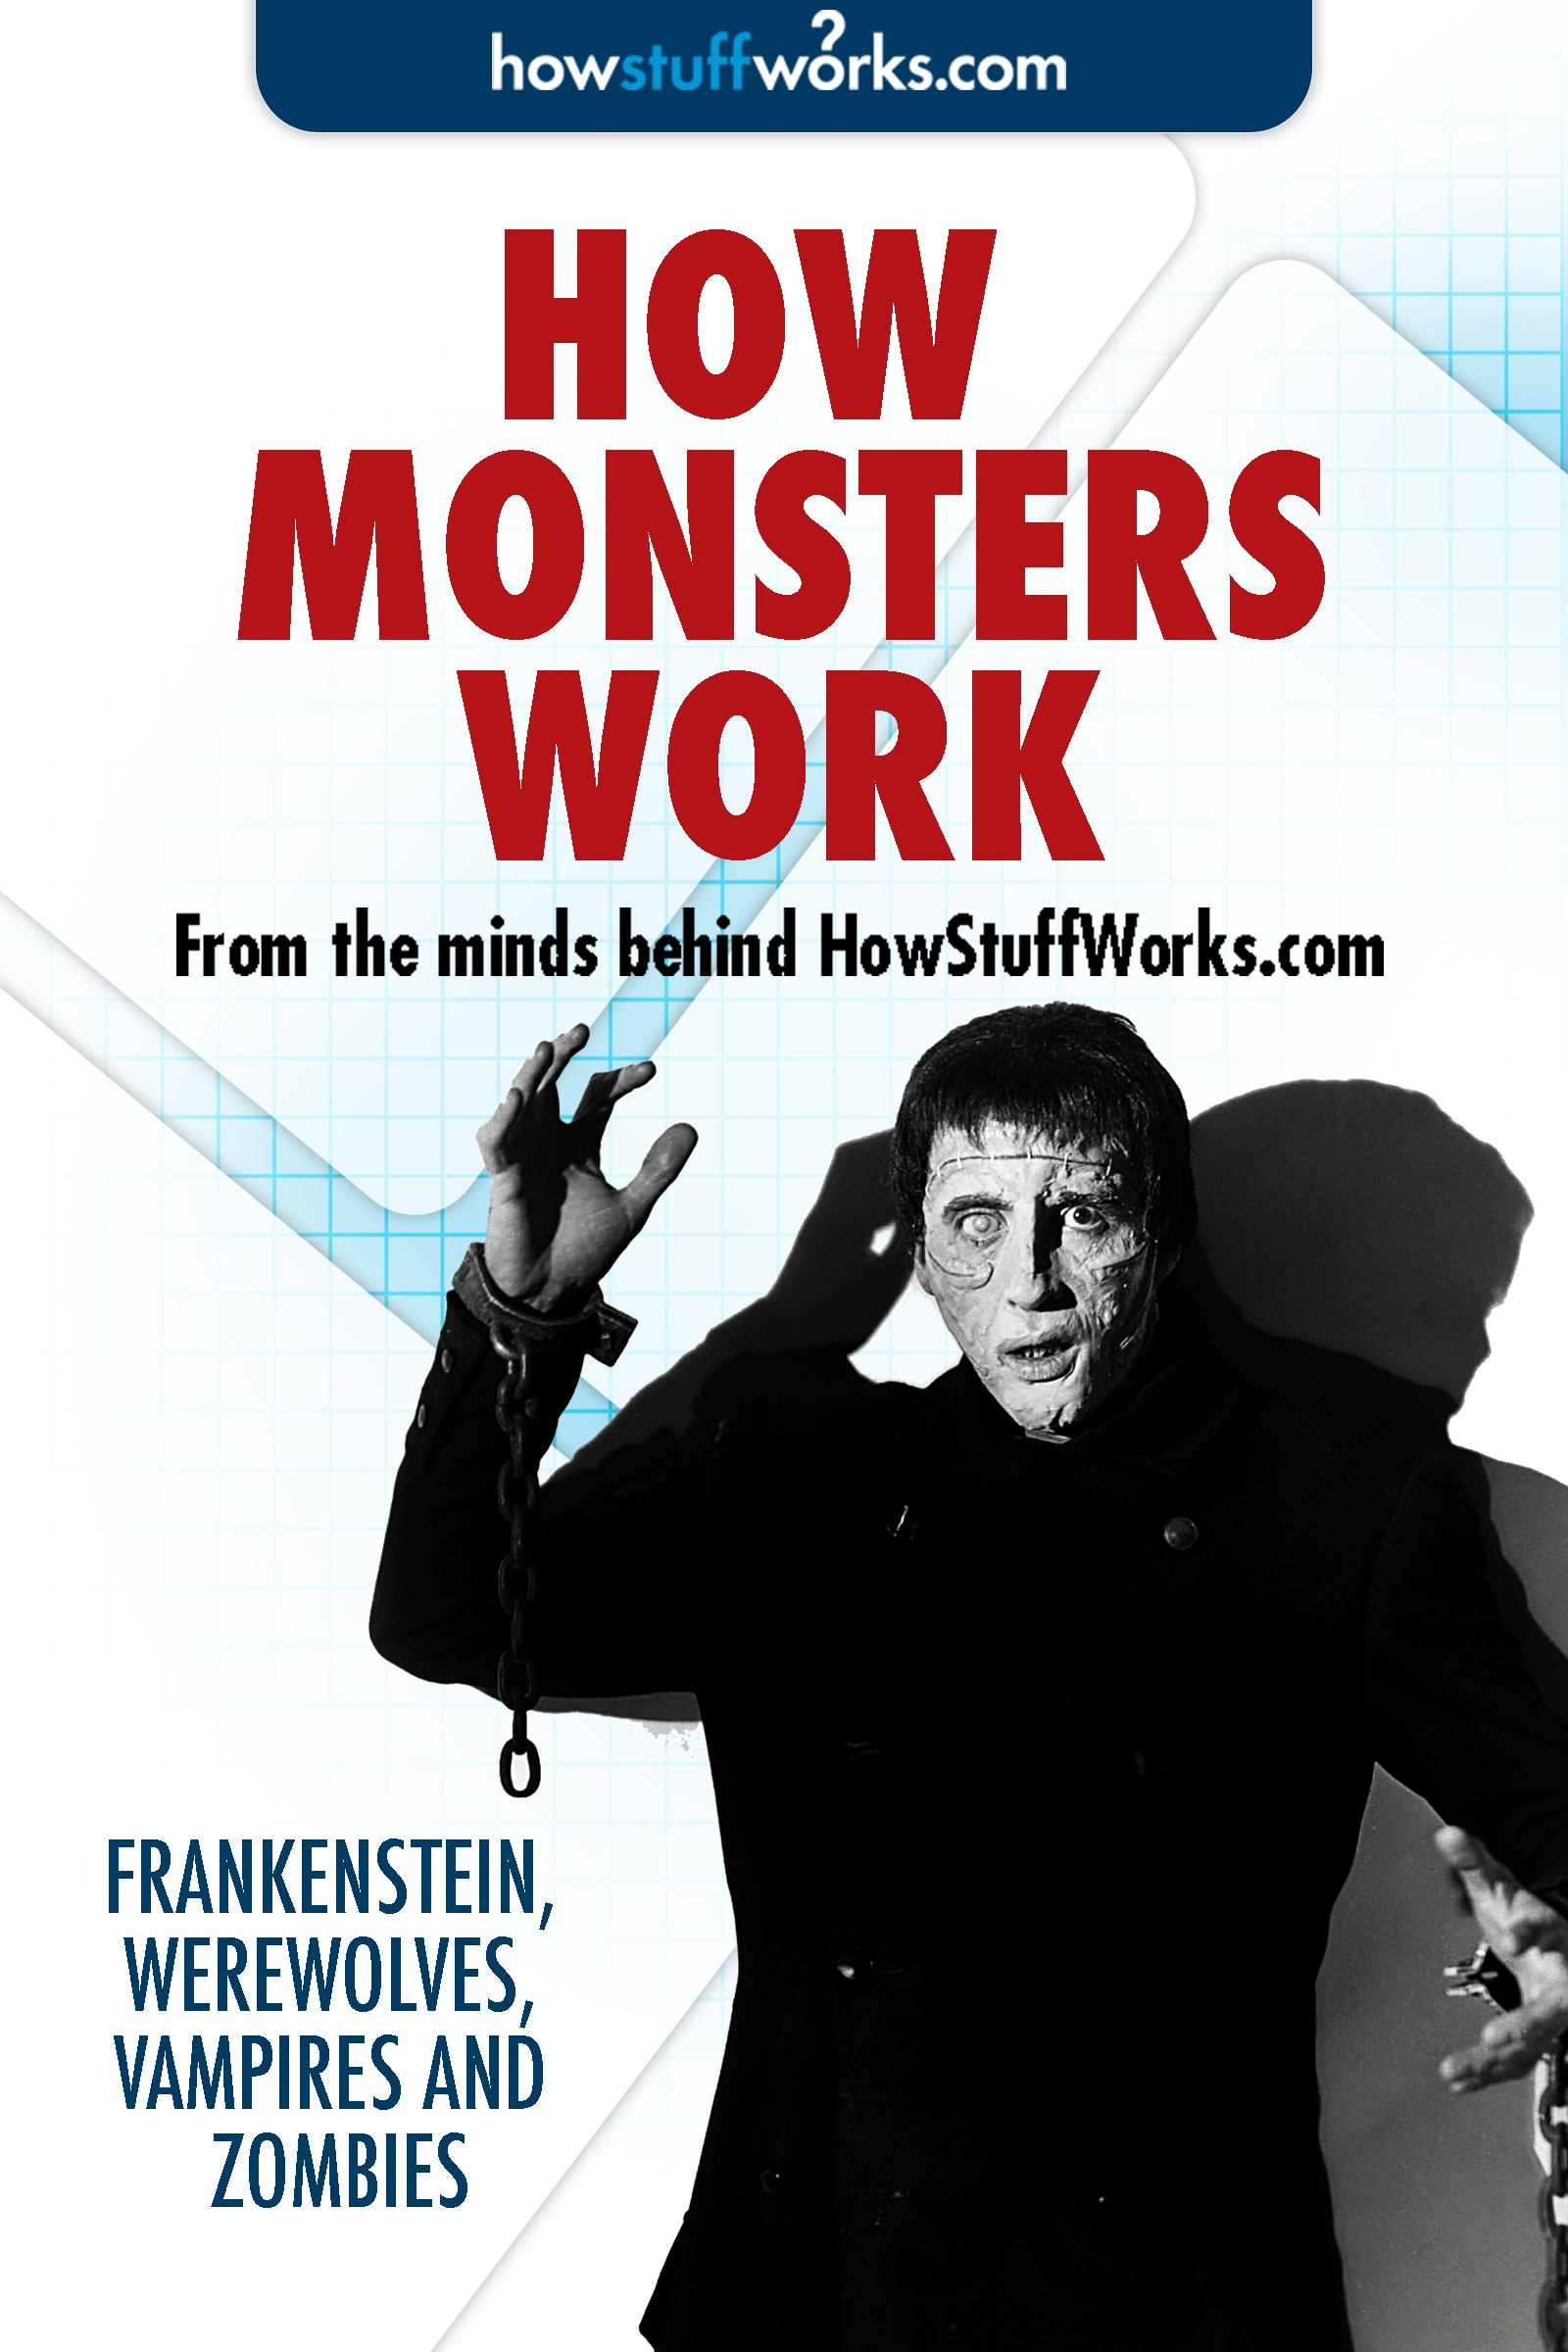 How Monsters Work: Frankenstein, Werewolves, Vampires and Zombies